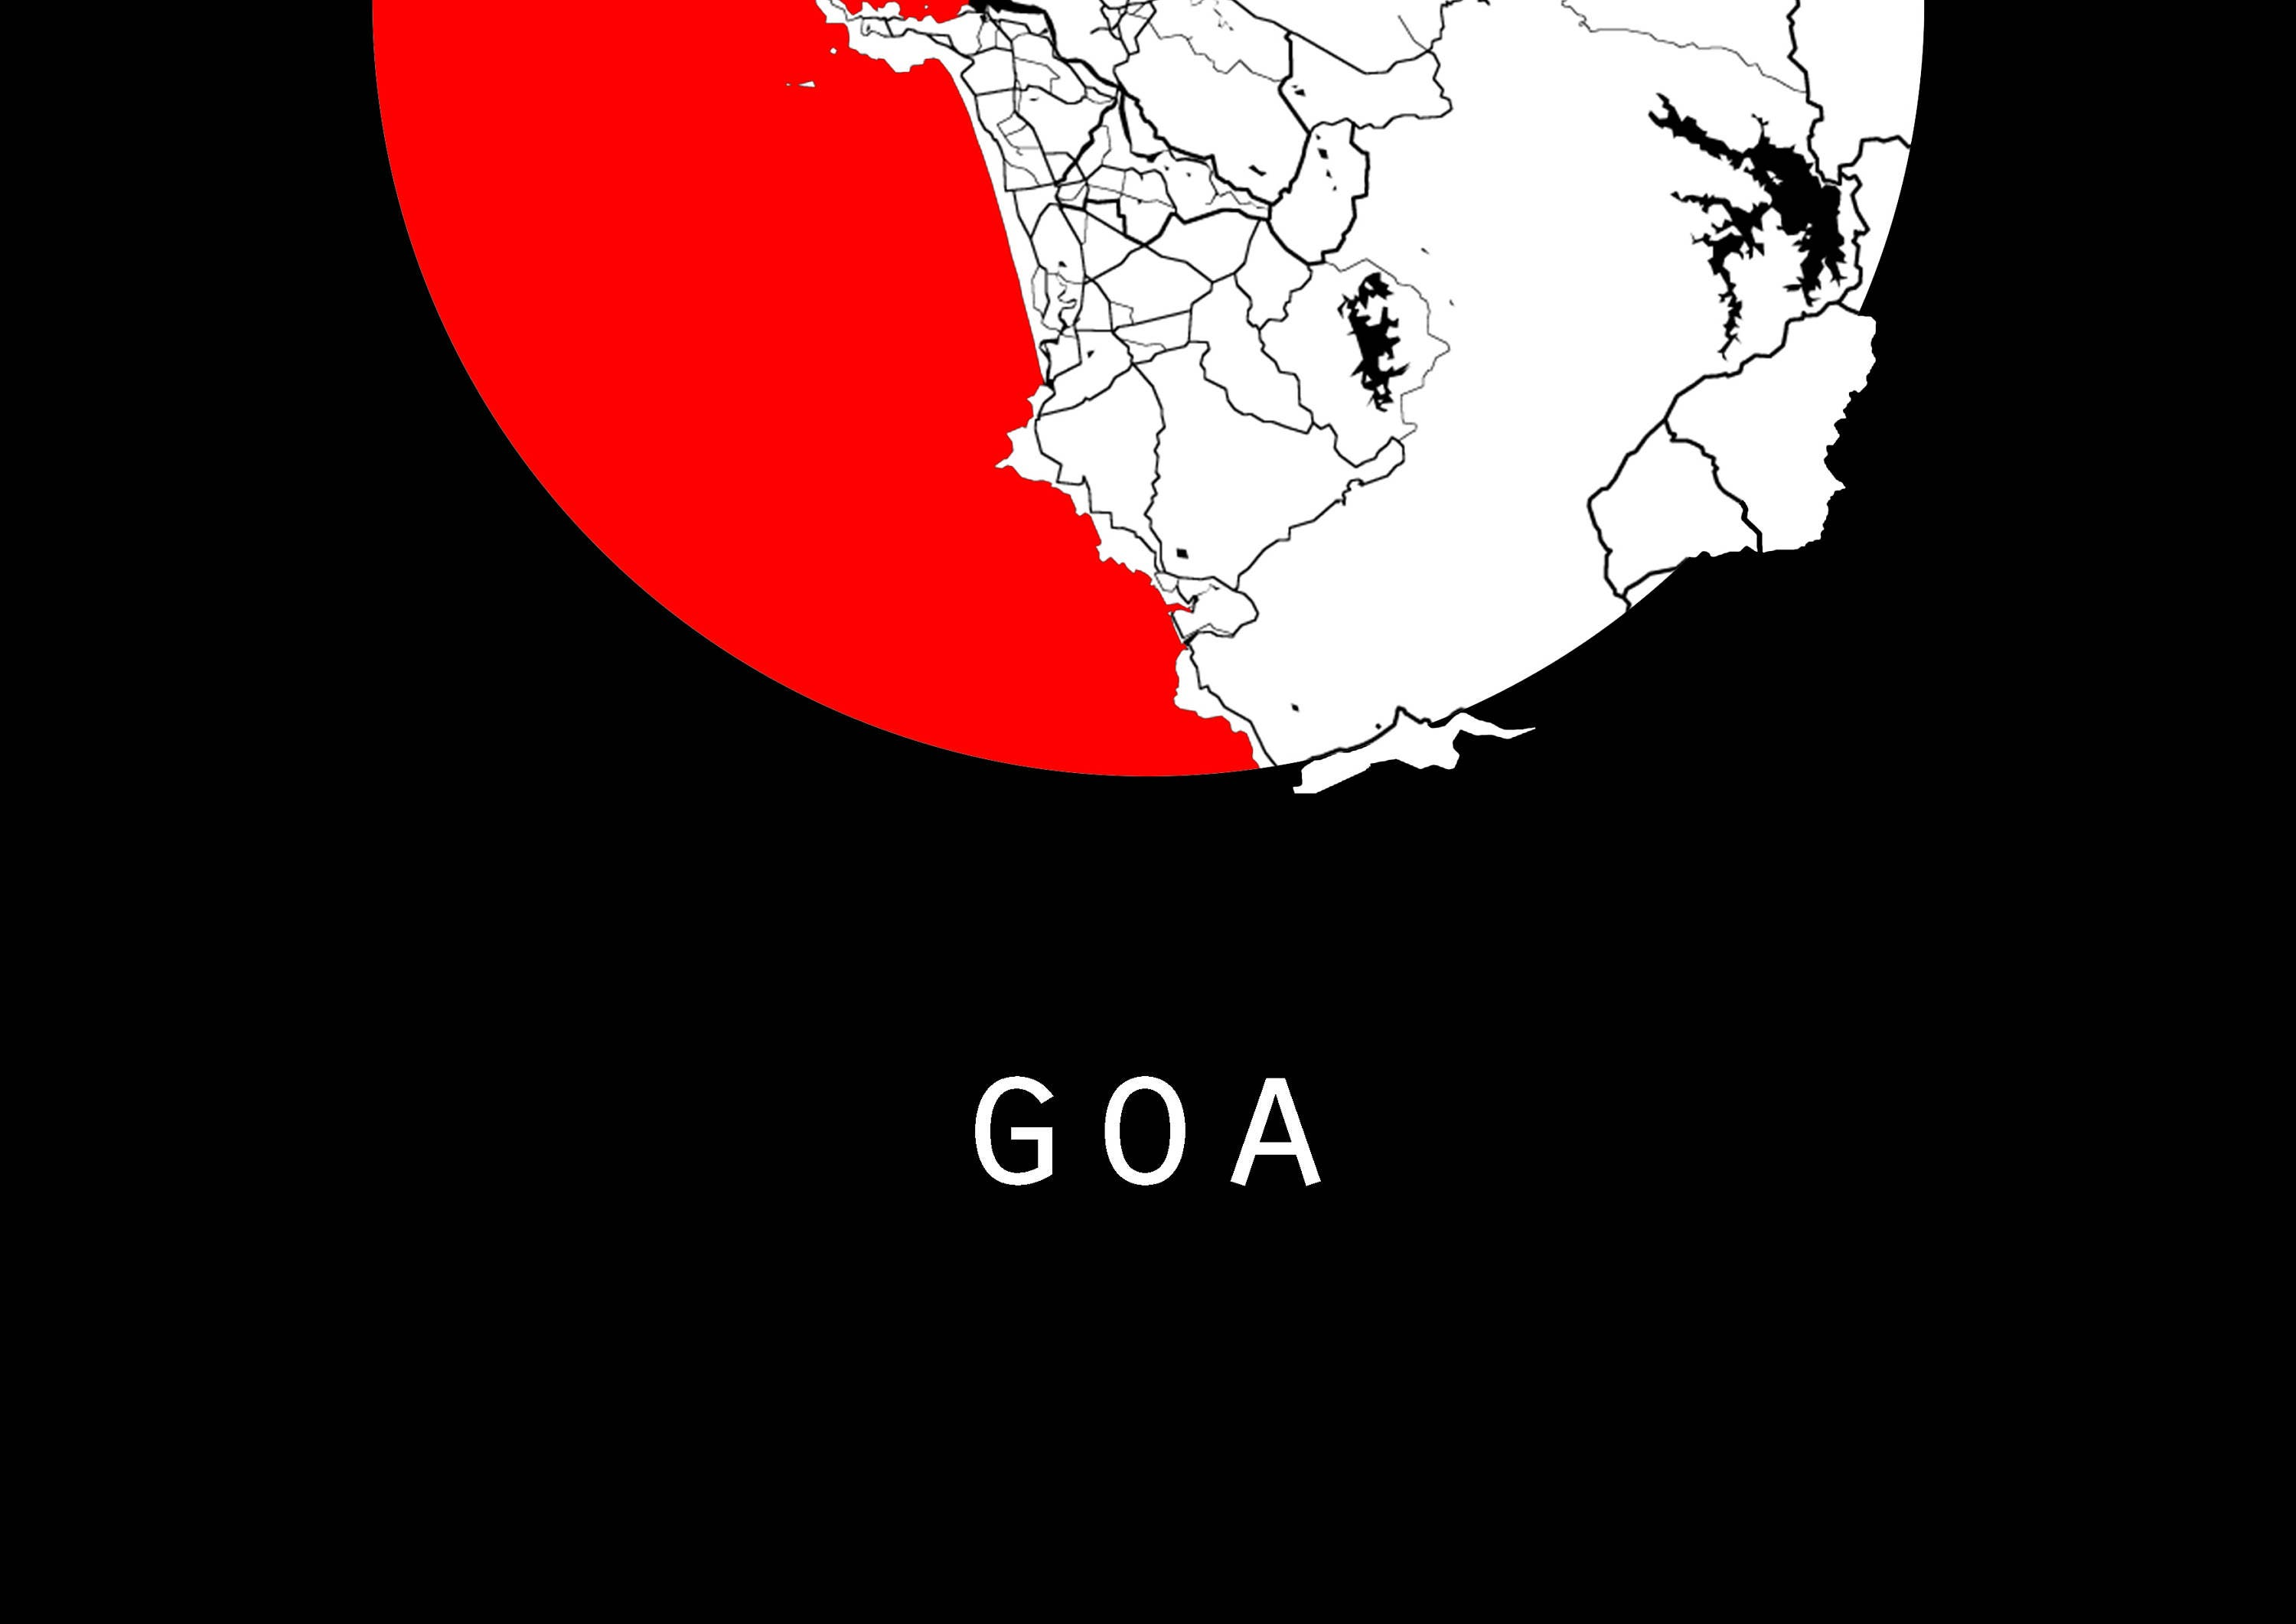 Goa map world map india map maps black and white map etsy zoom gumiabroncs Image collections